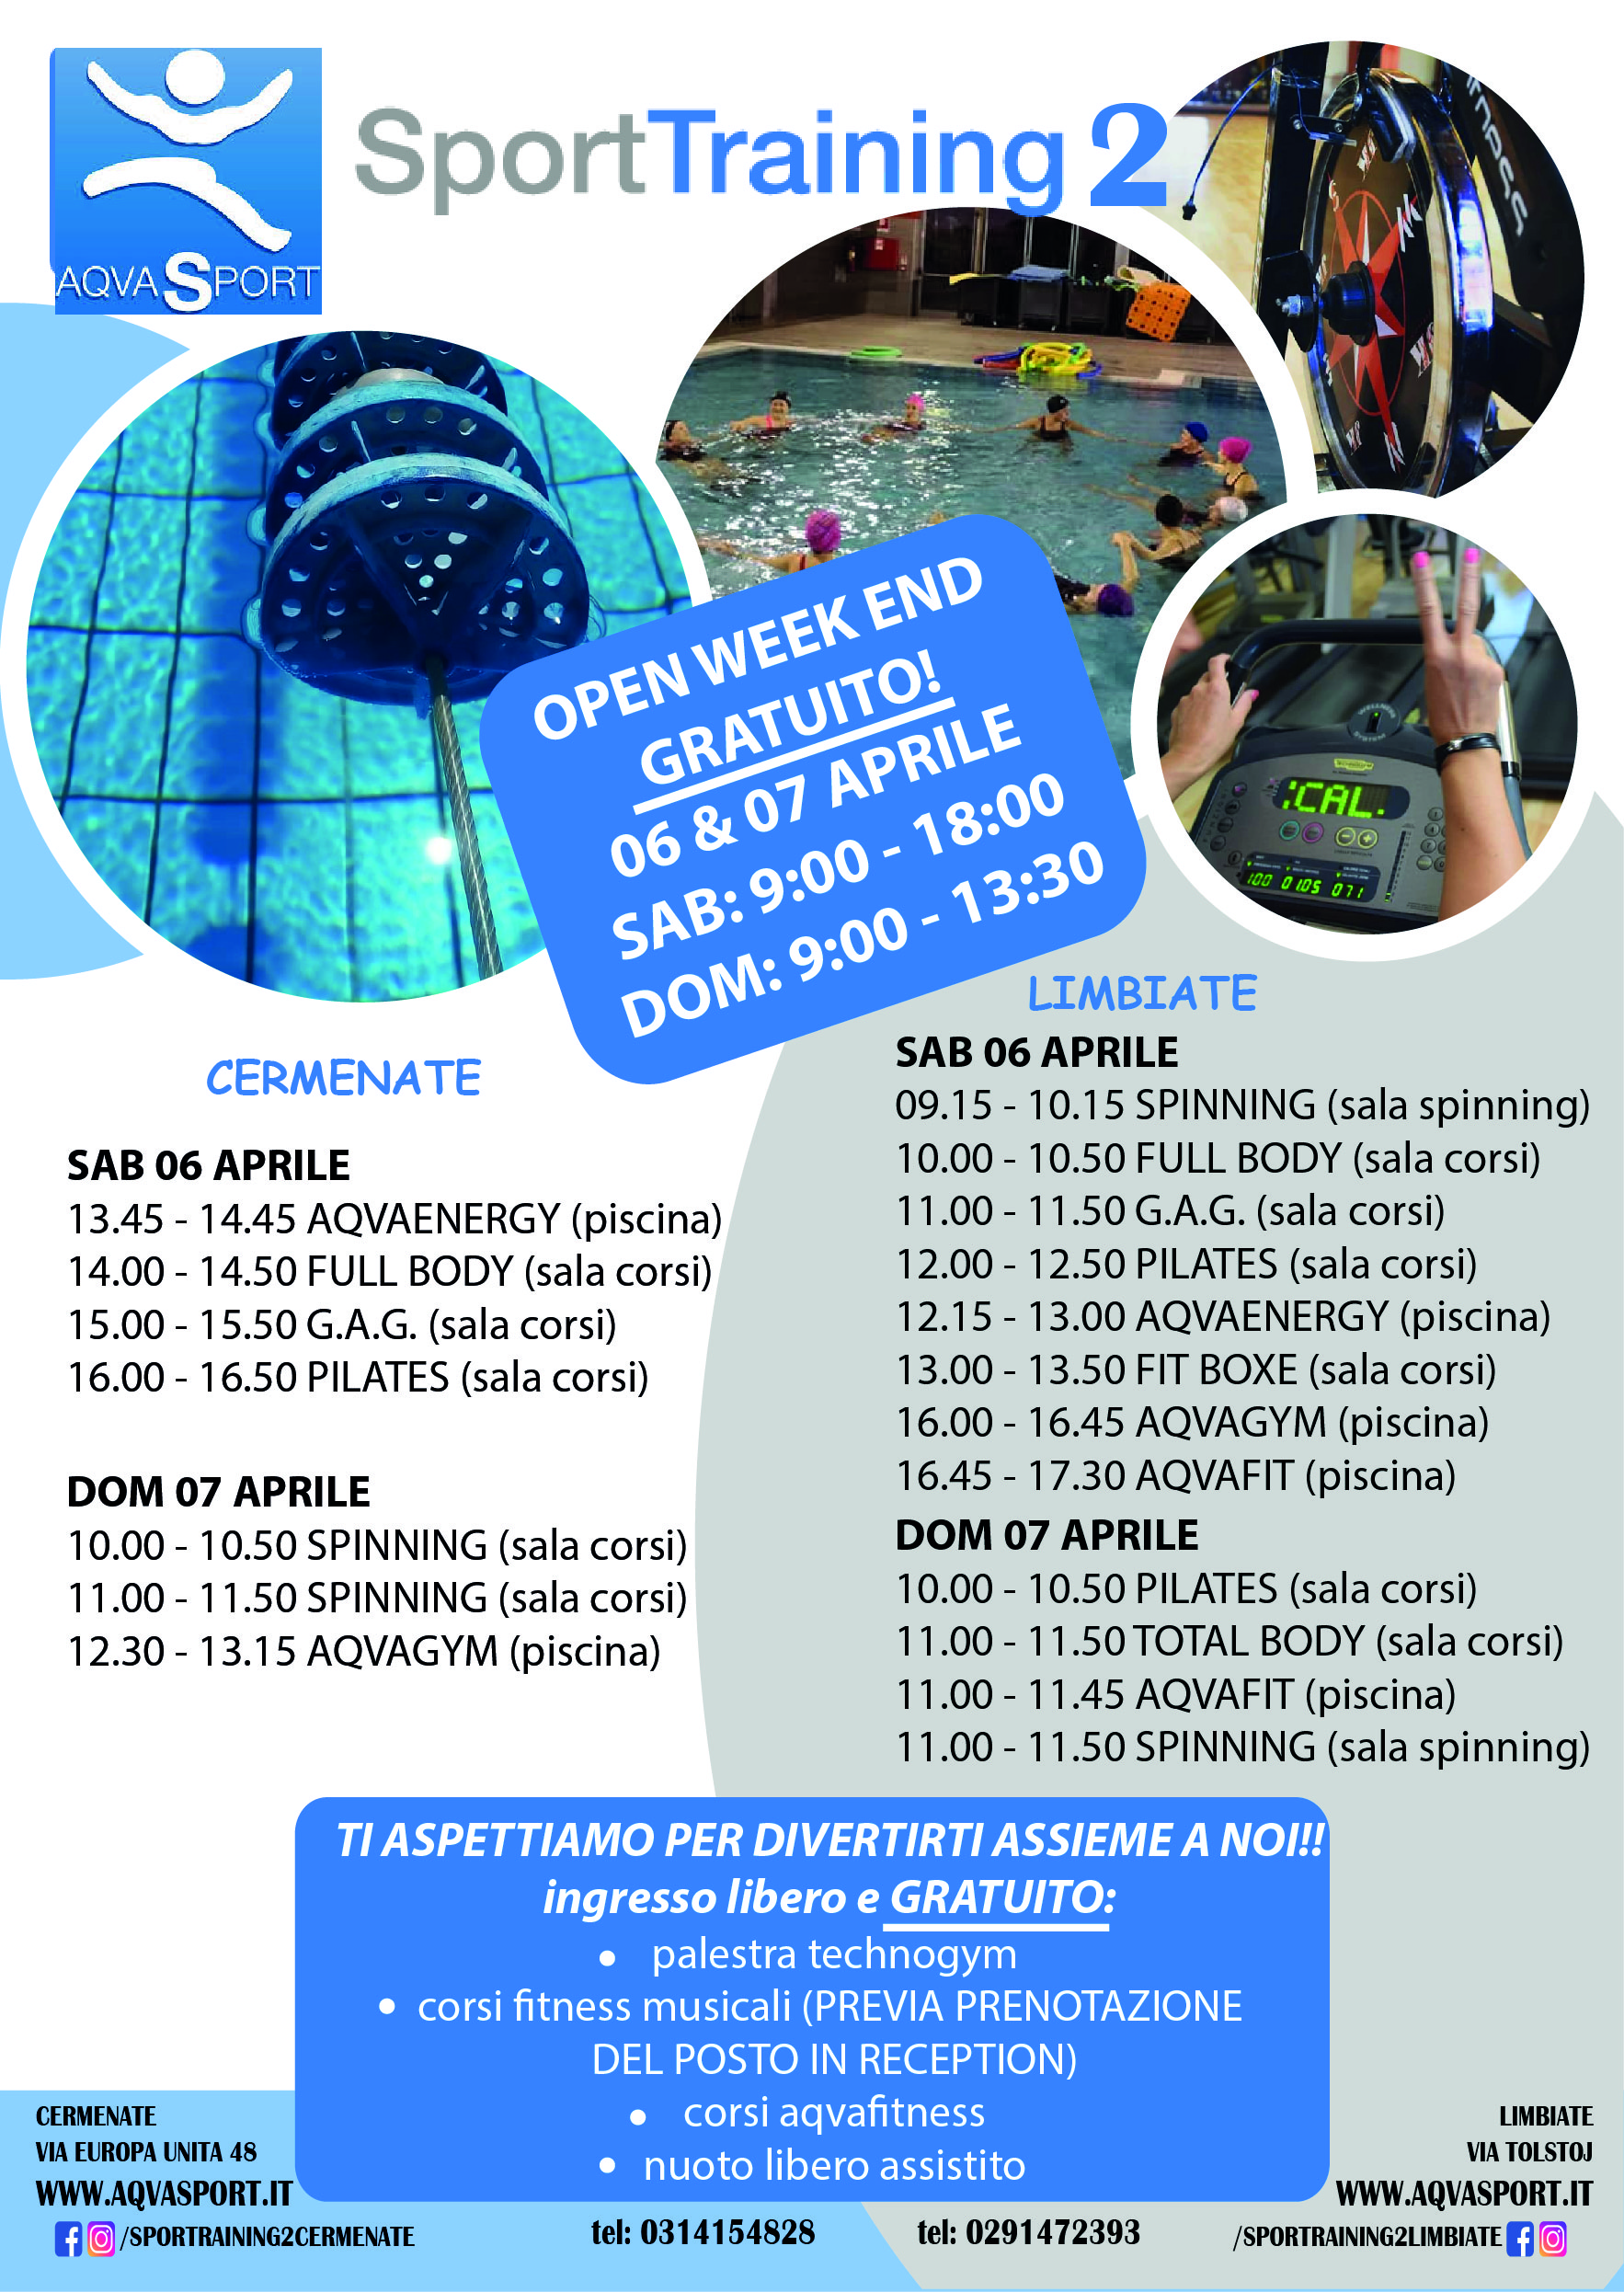 OPENDAY WEEK END 6/7 APRILE